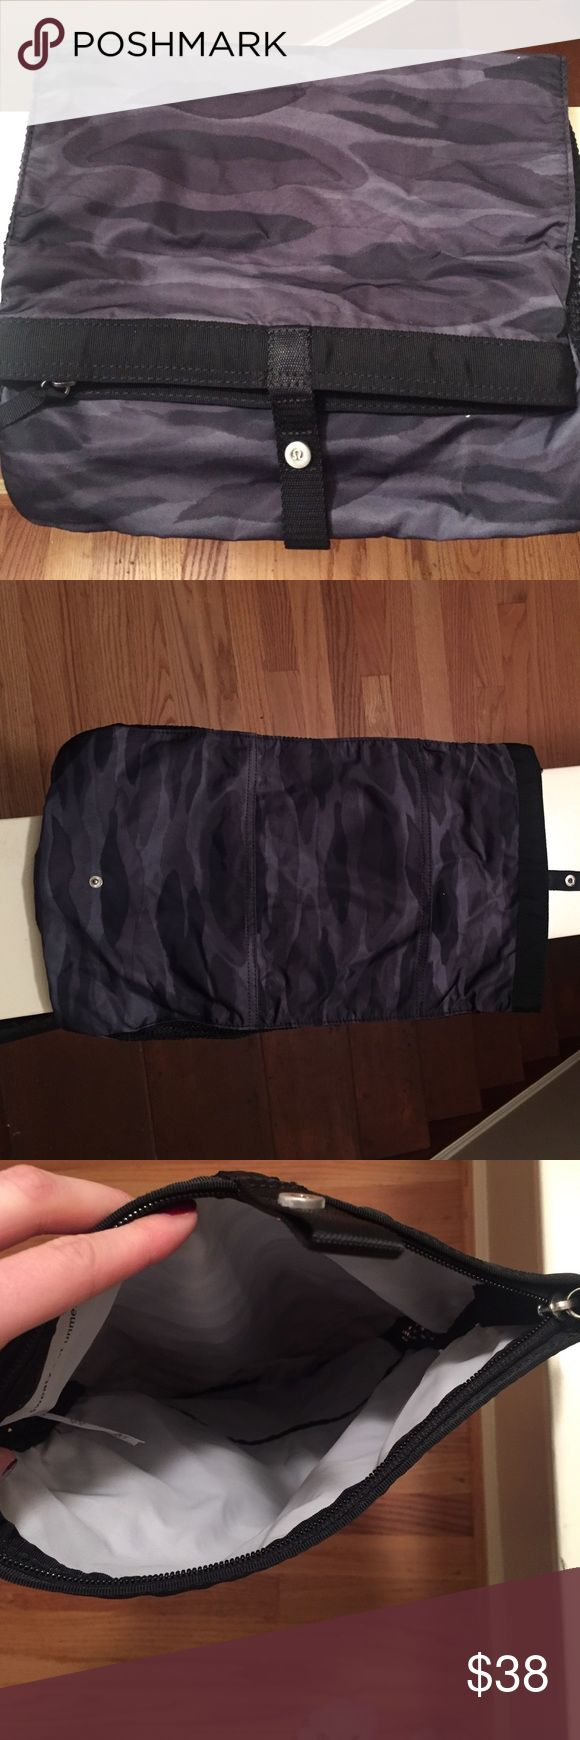 lululemon athletics traveling cosmetic bag Never been used before. Very cute army print lululemon athletica Bags Cosmetic Bags & Cases